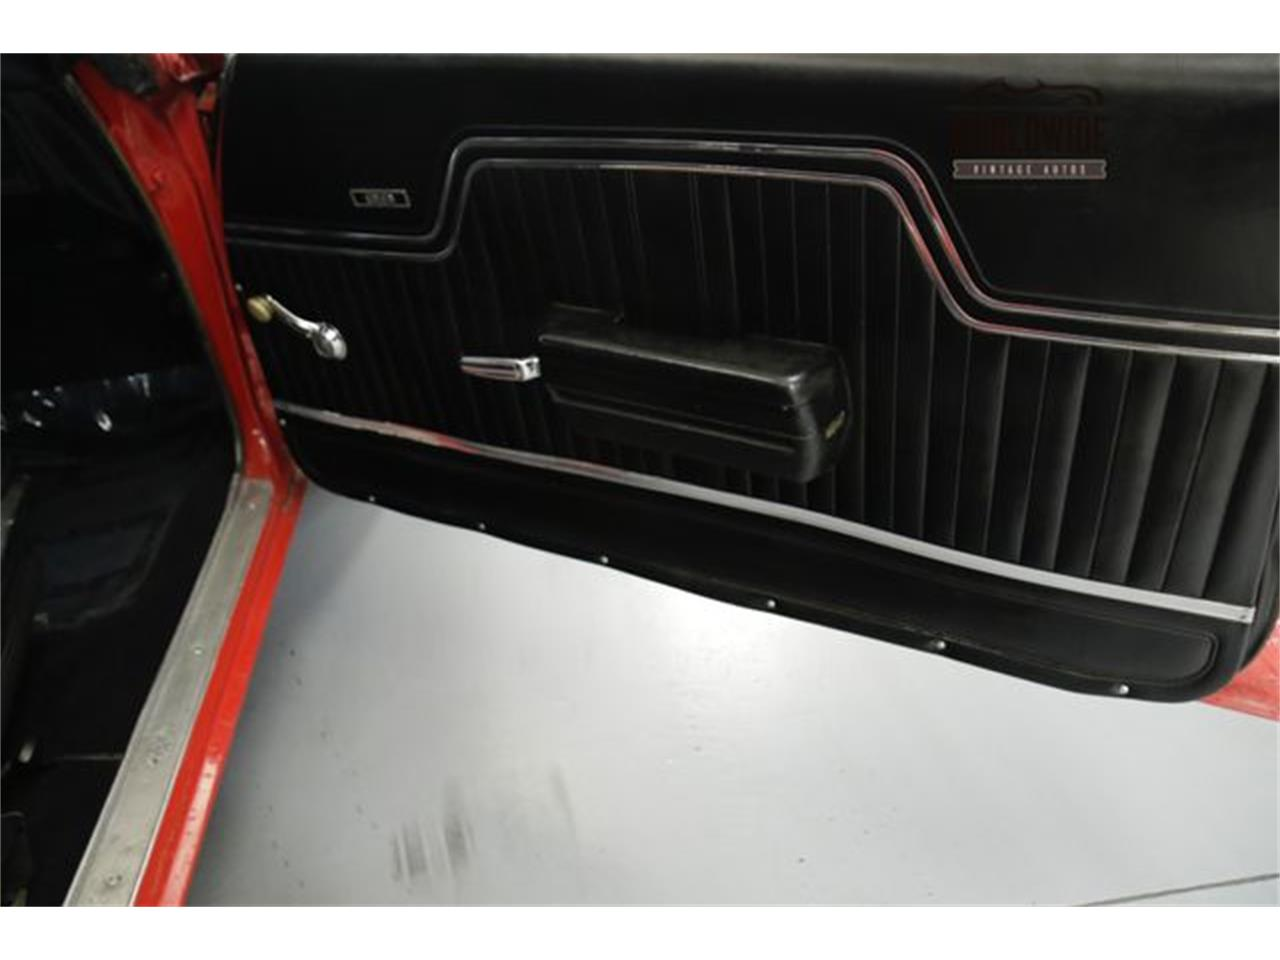 Large Picture of '71 Chevrolet Chevelle - $24,900.00 Offered by Worldwide Vintage Autos - PH1X